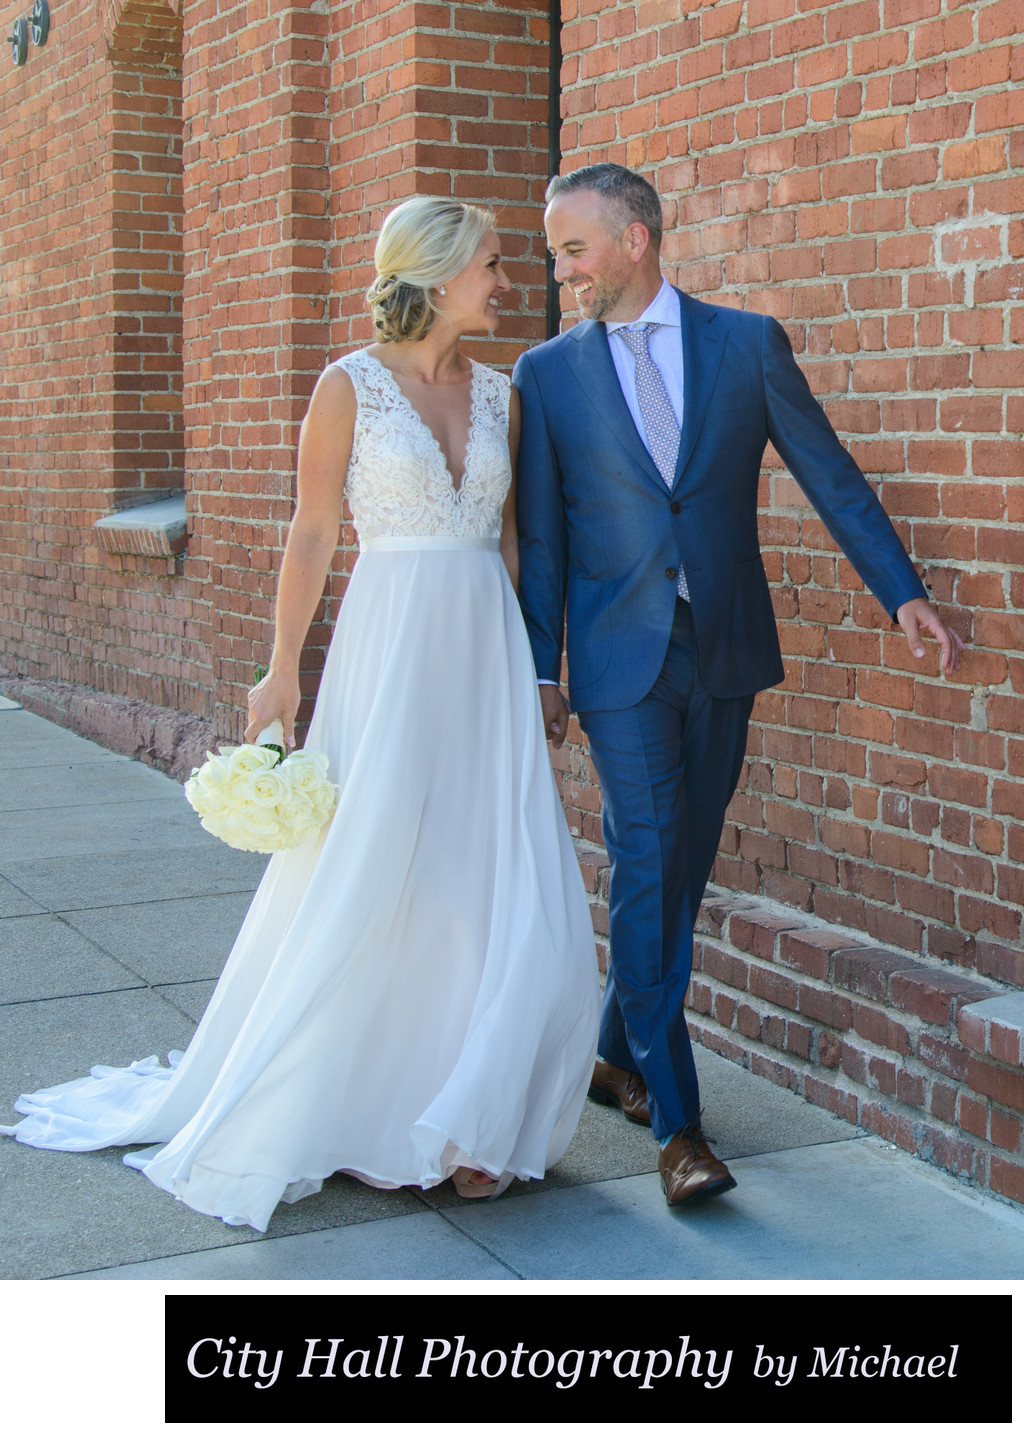 San Francisco City Hall Wedding Photographer - Walk by the Bricks